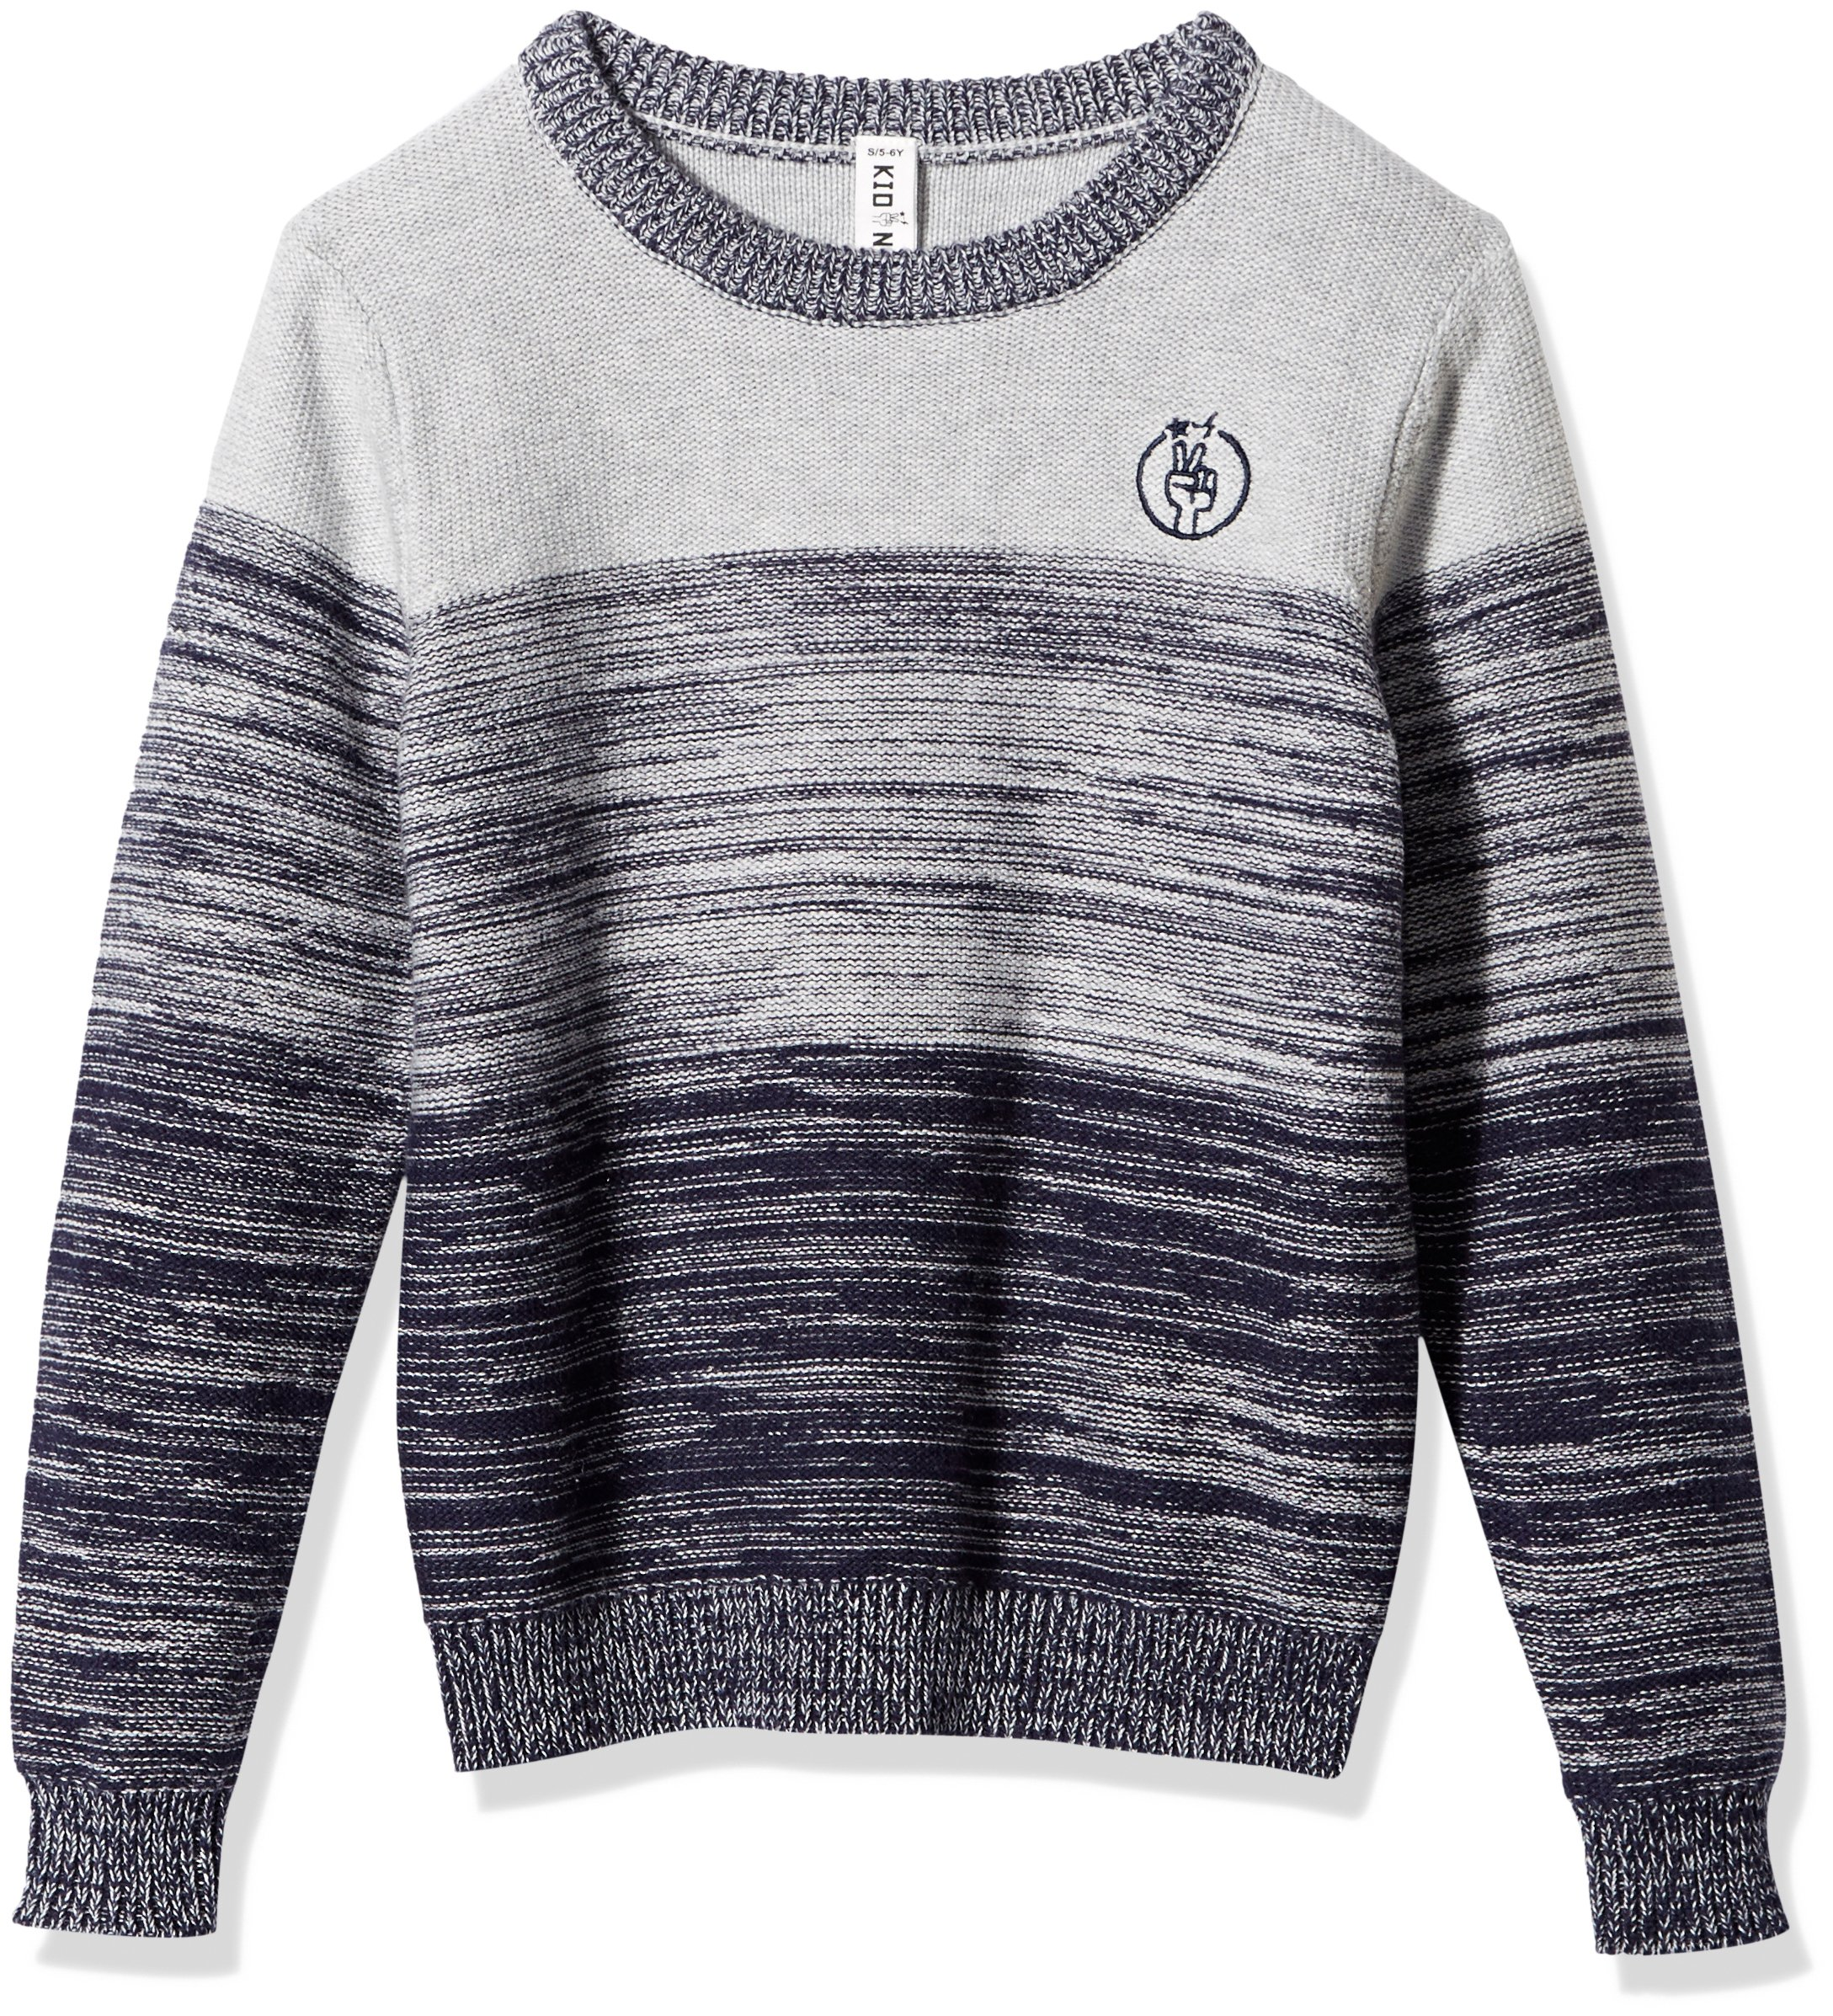 Kid Nation Boys' Engineered Stripe Long-Sleeve Pullover Sweater L Gray